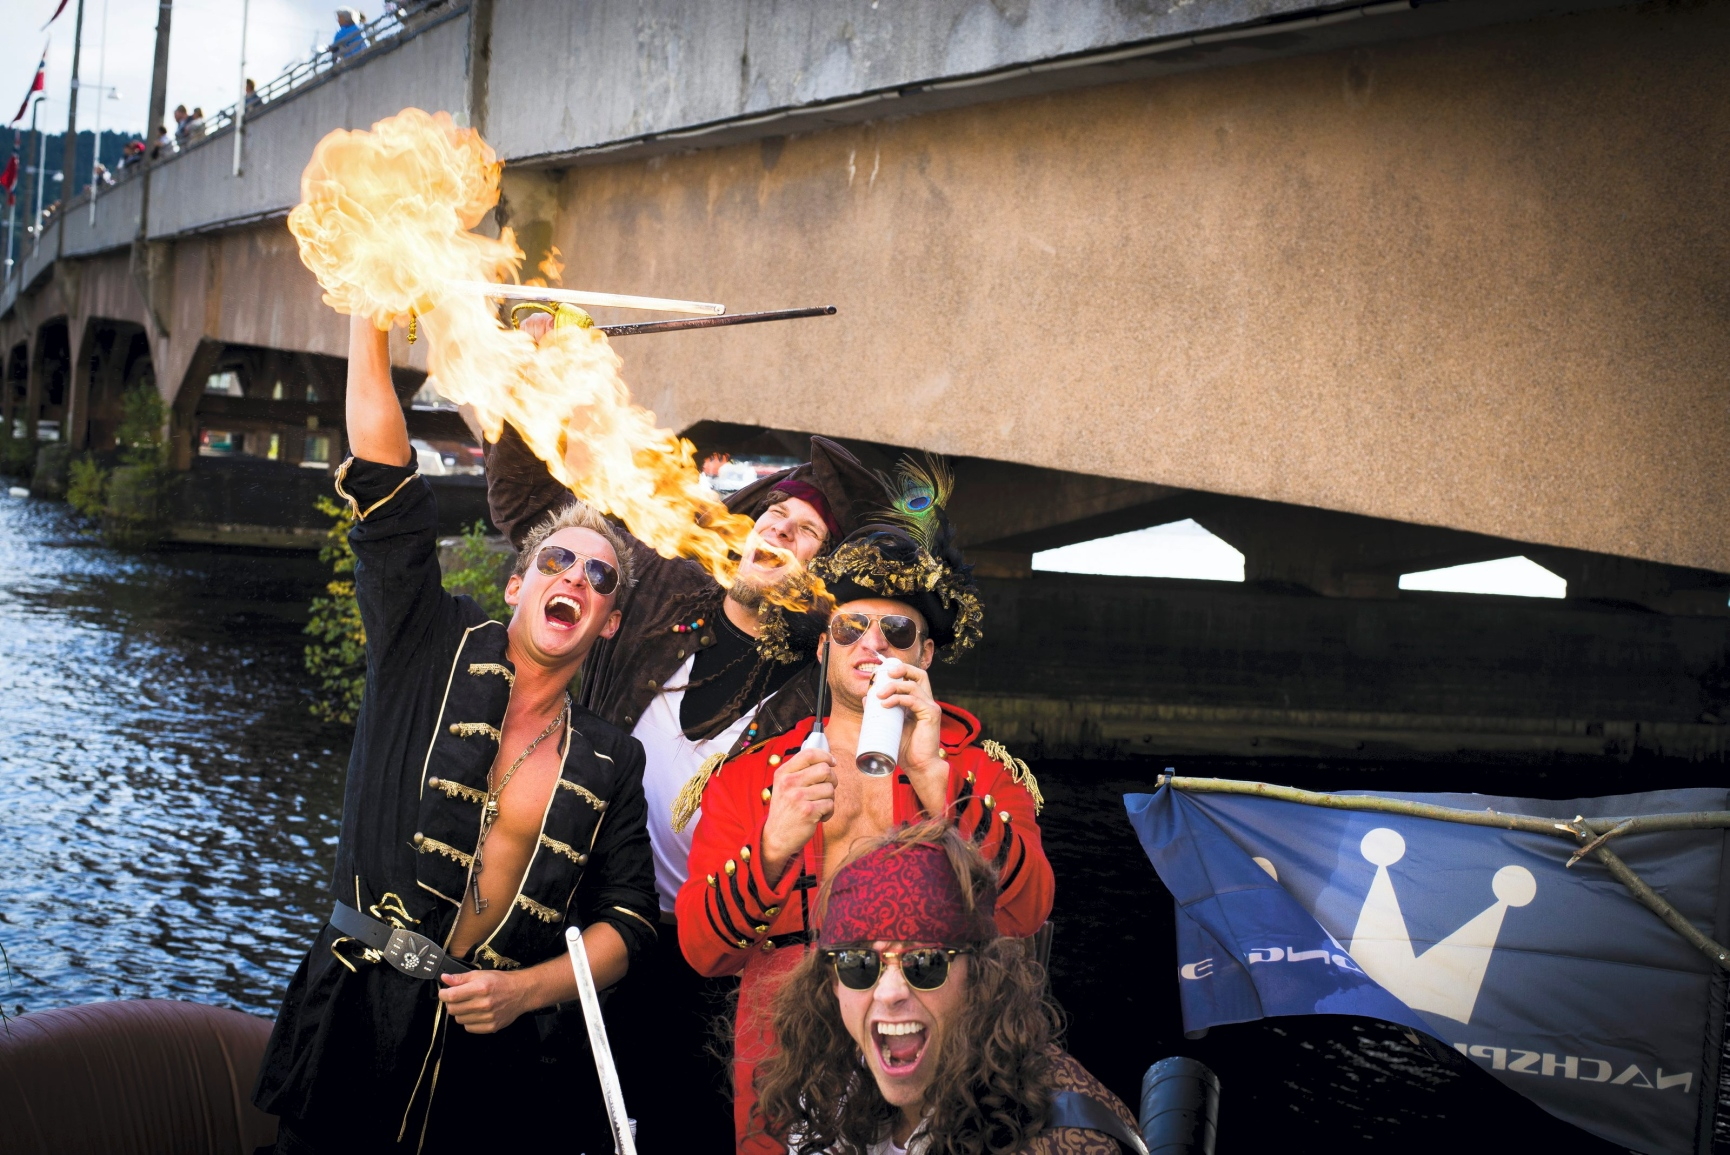 ELVEPIRATER